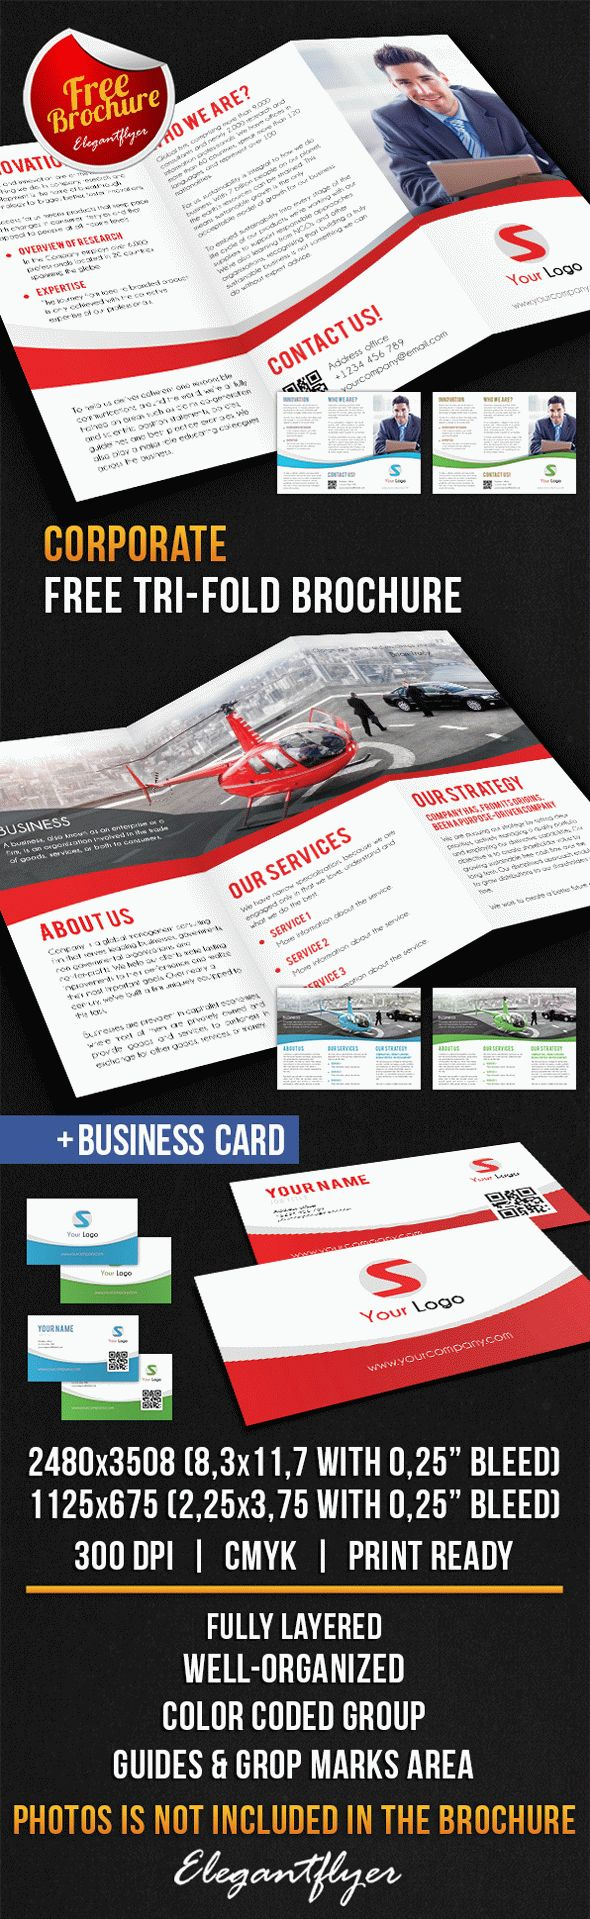 Corporate Tri-Fold Brochure – Free PSD Template